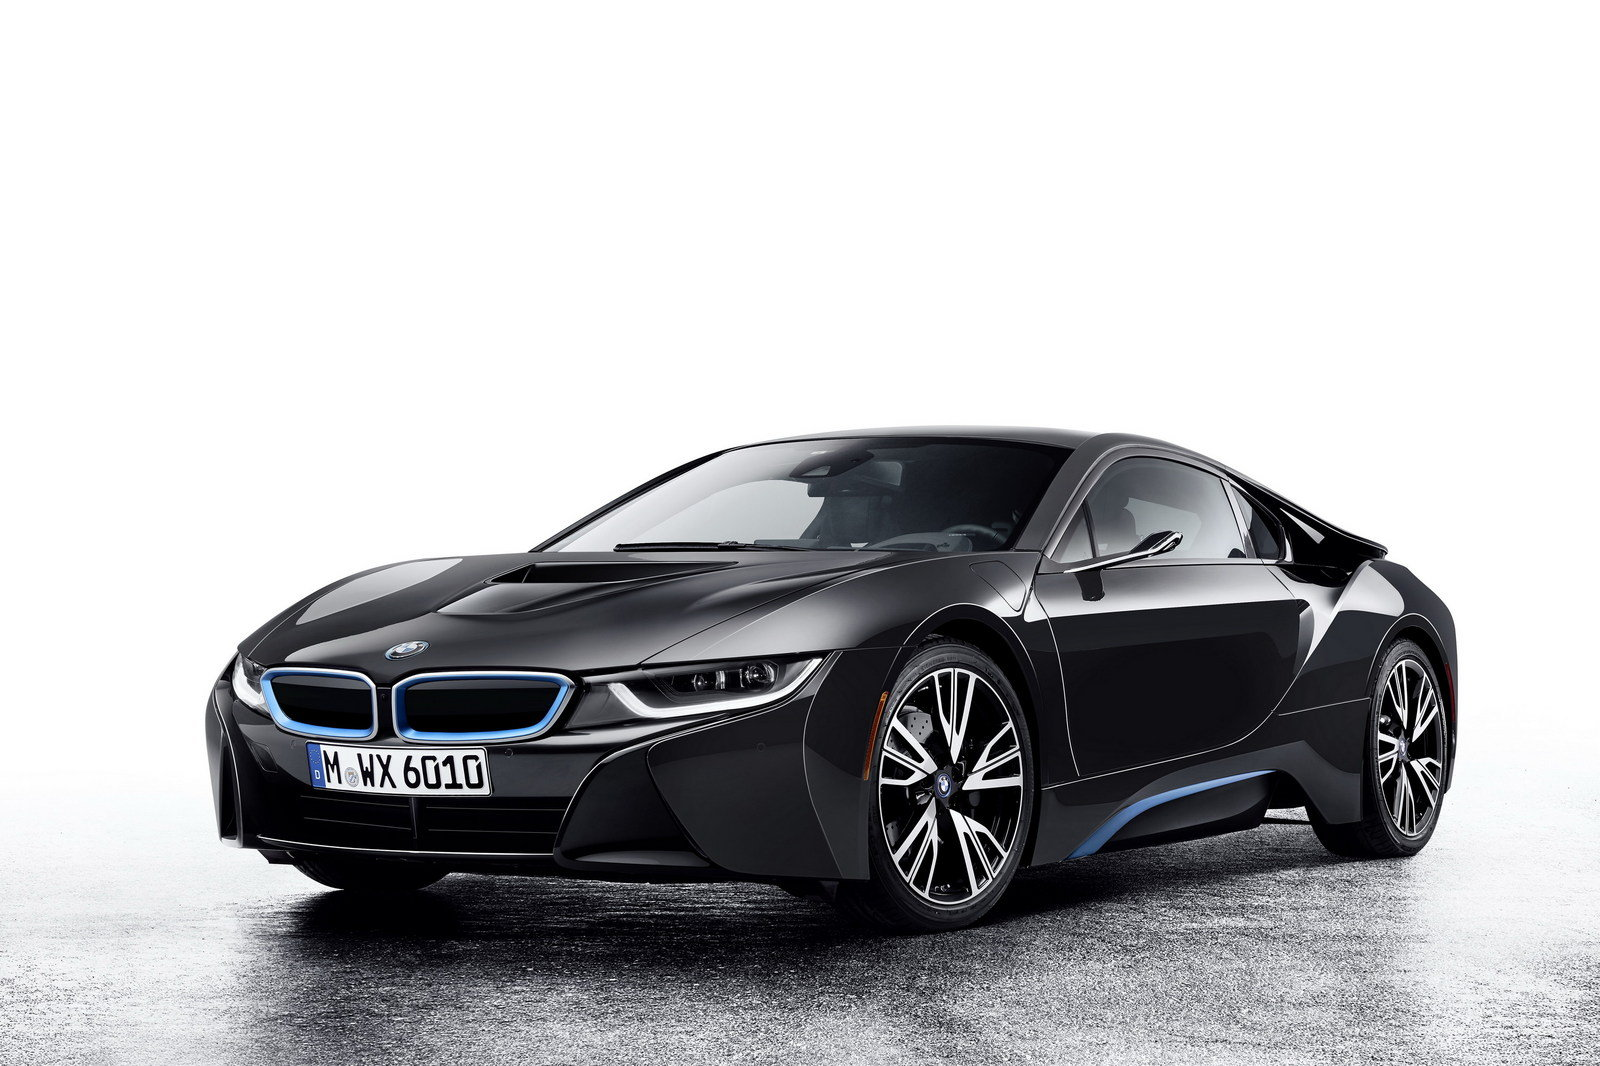 2016 bmw i8 mirrorless concept picture 660765 car review top speed. Black Bedroom Furniture Sets. Home Design Ideas